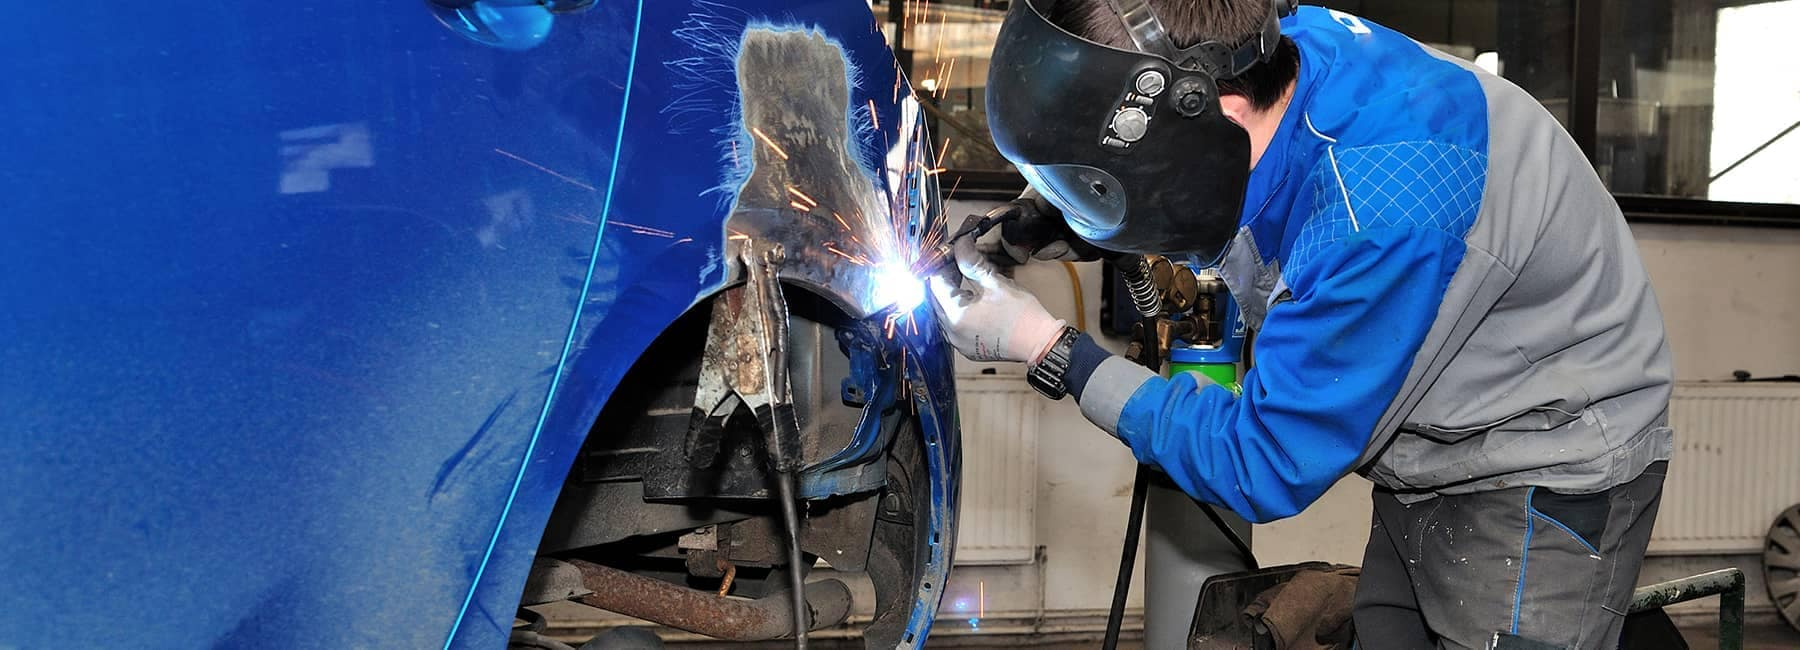 Body Shop technician working on repairing a blue vehicle